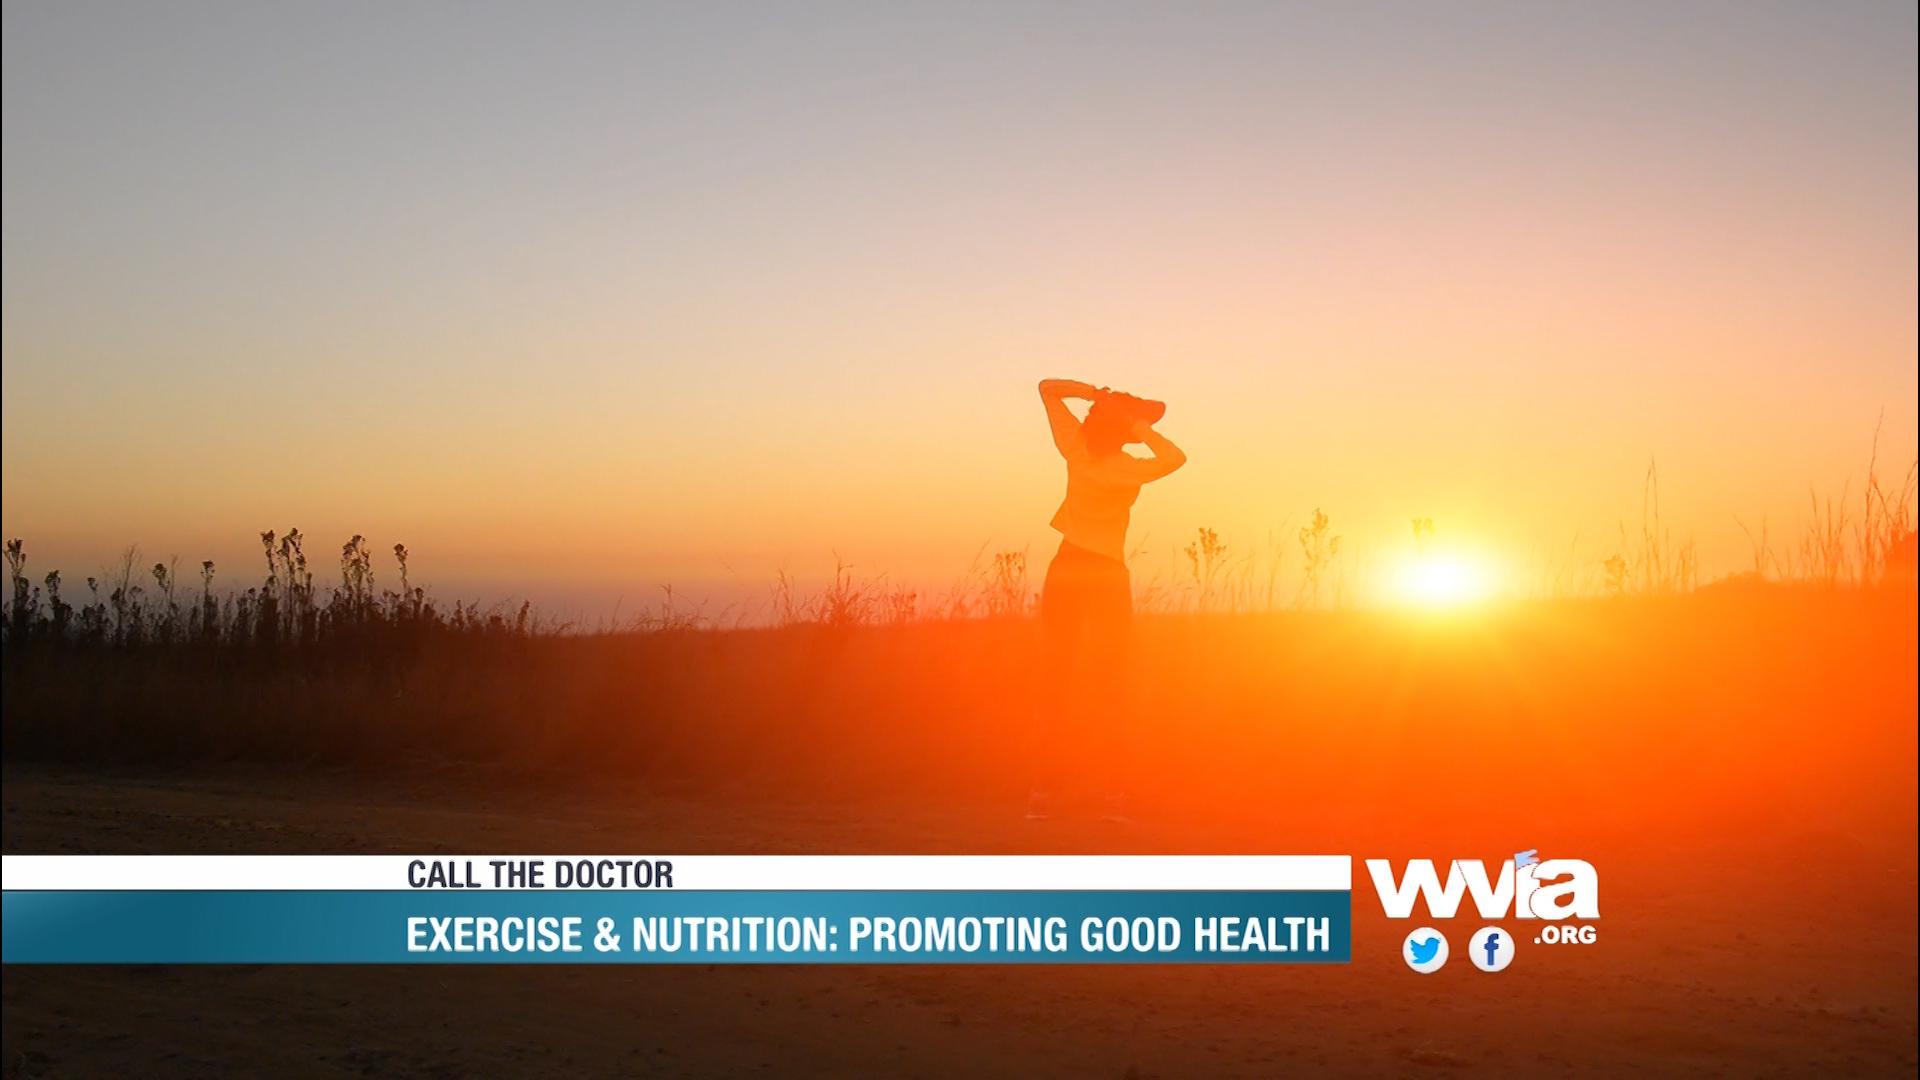 Call the Doctor - Exercise & Nutrition: Promoting Good Health